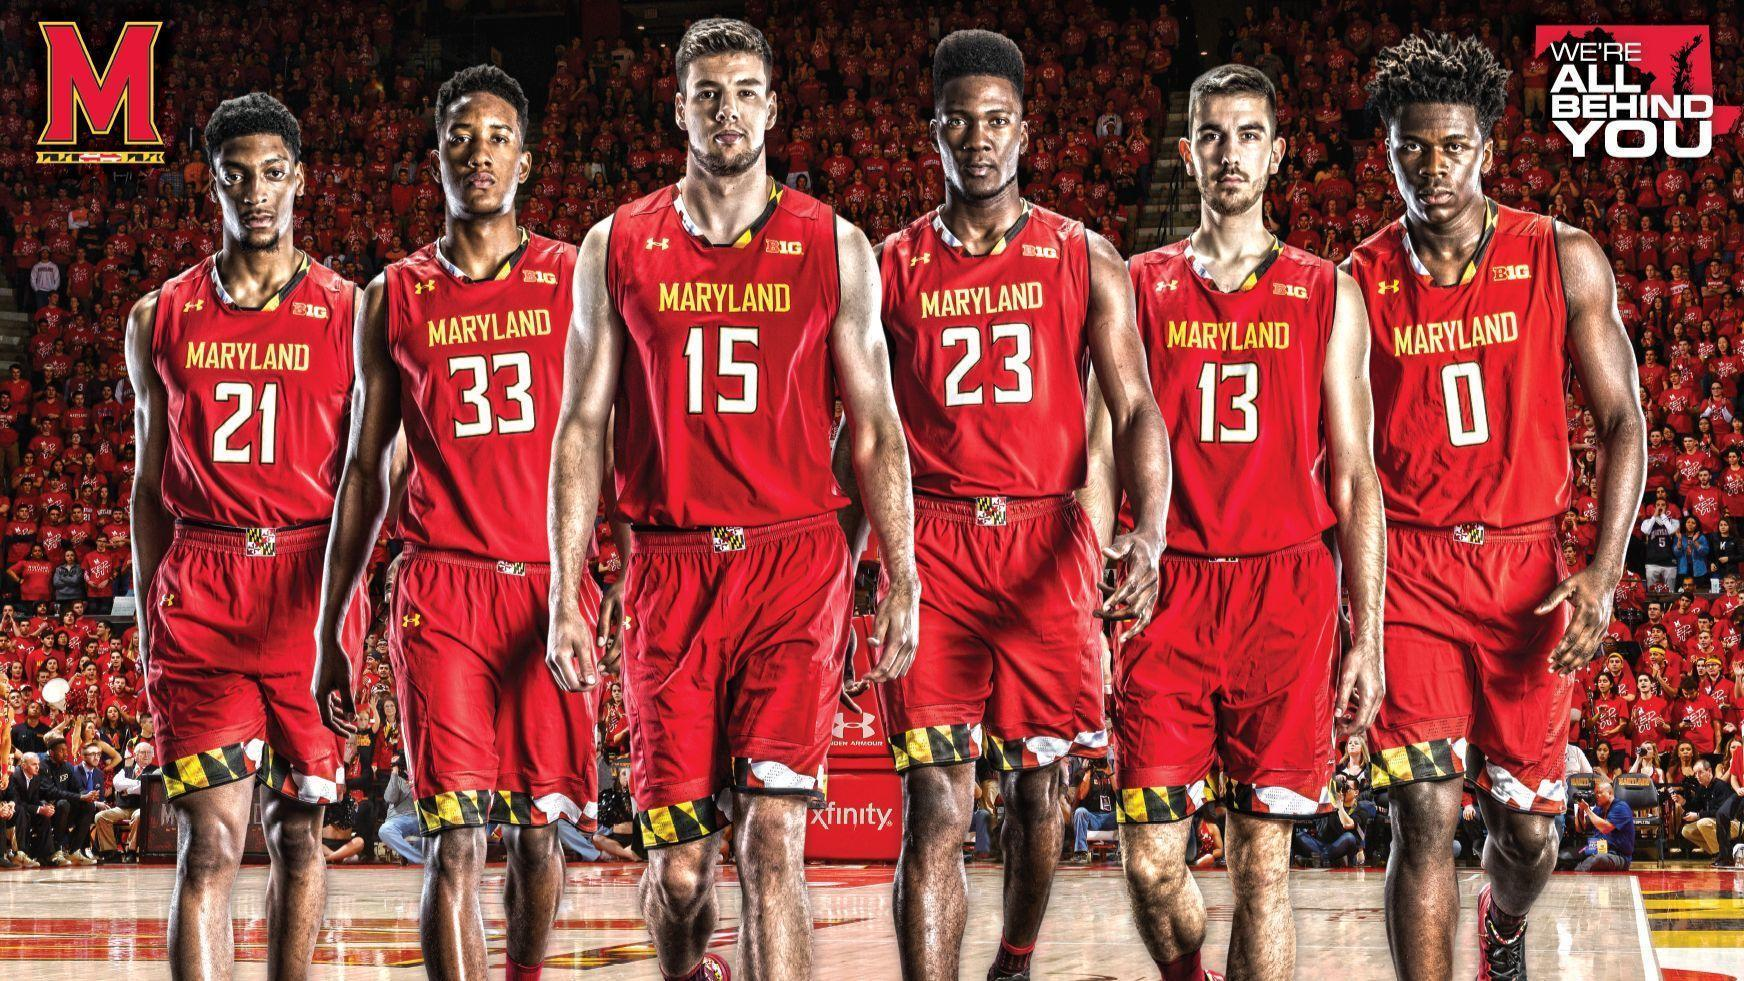 the international flavor of the maryland men's basketball team is